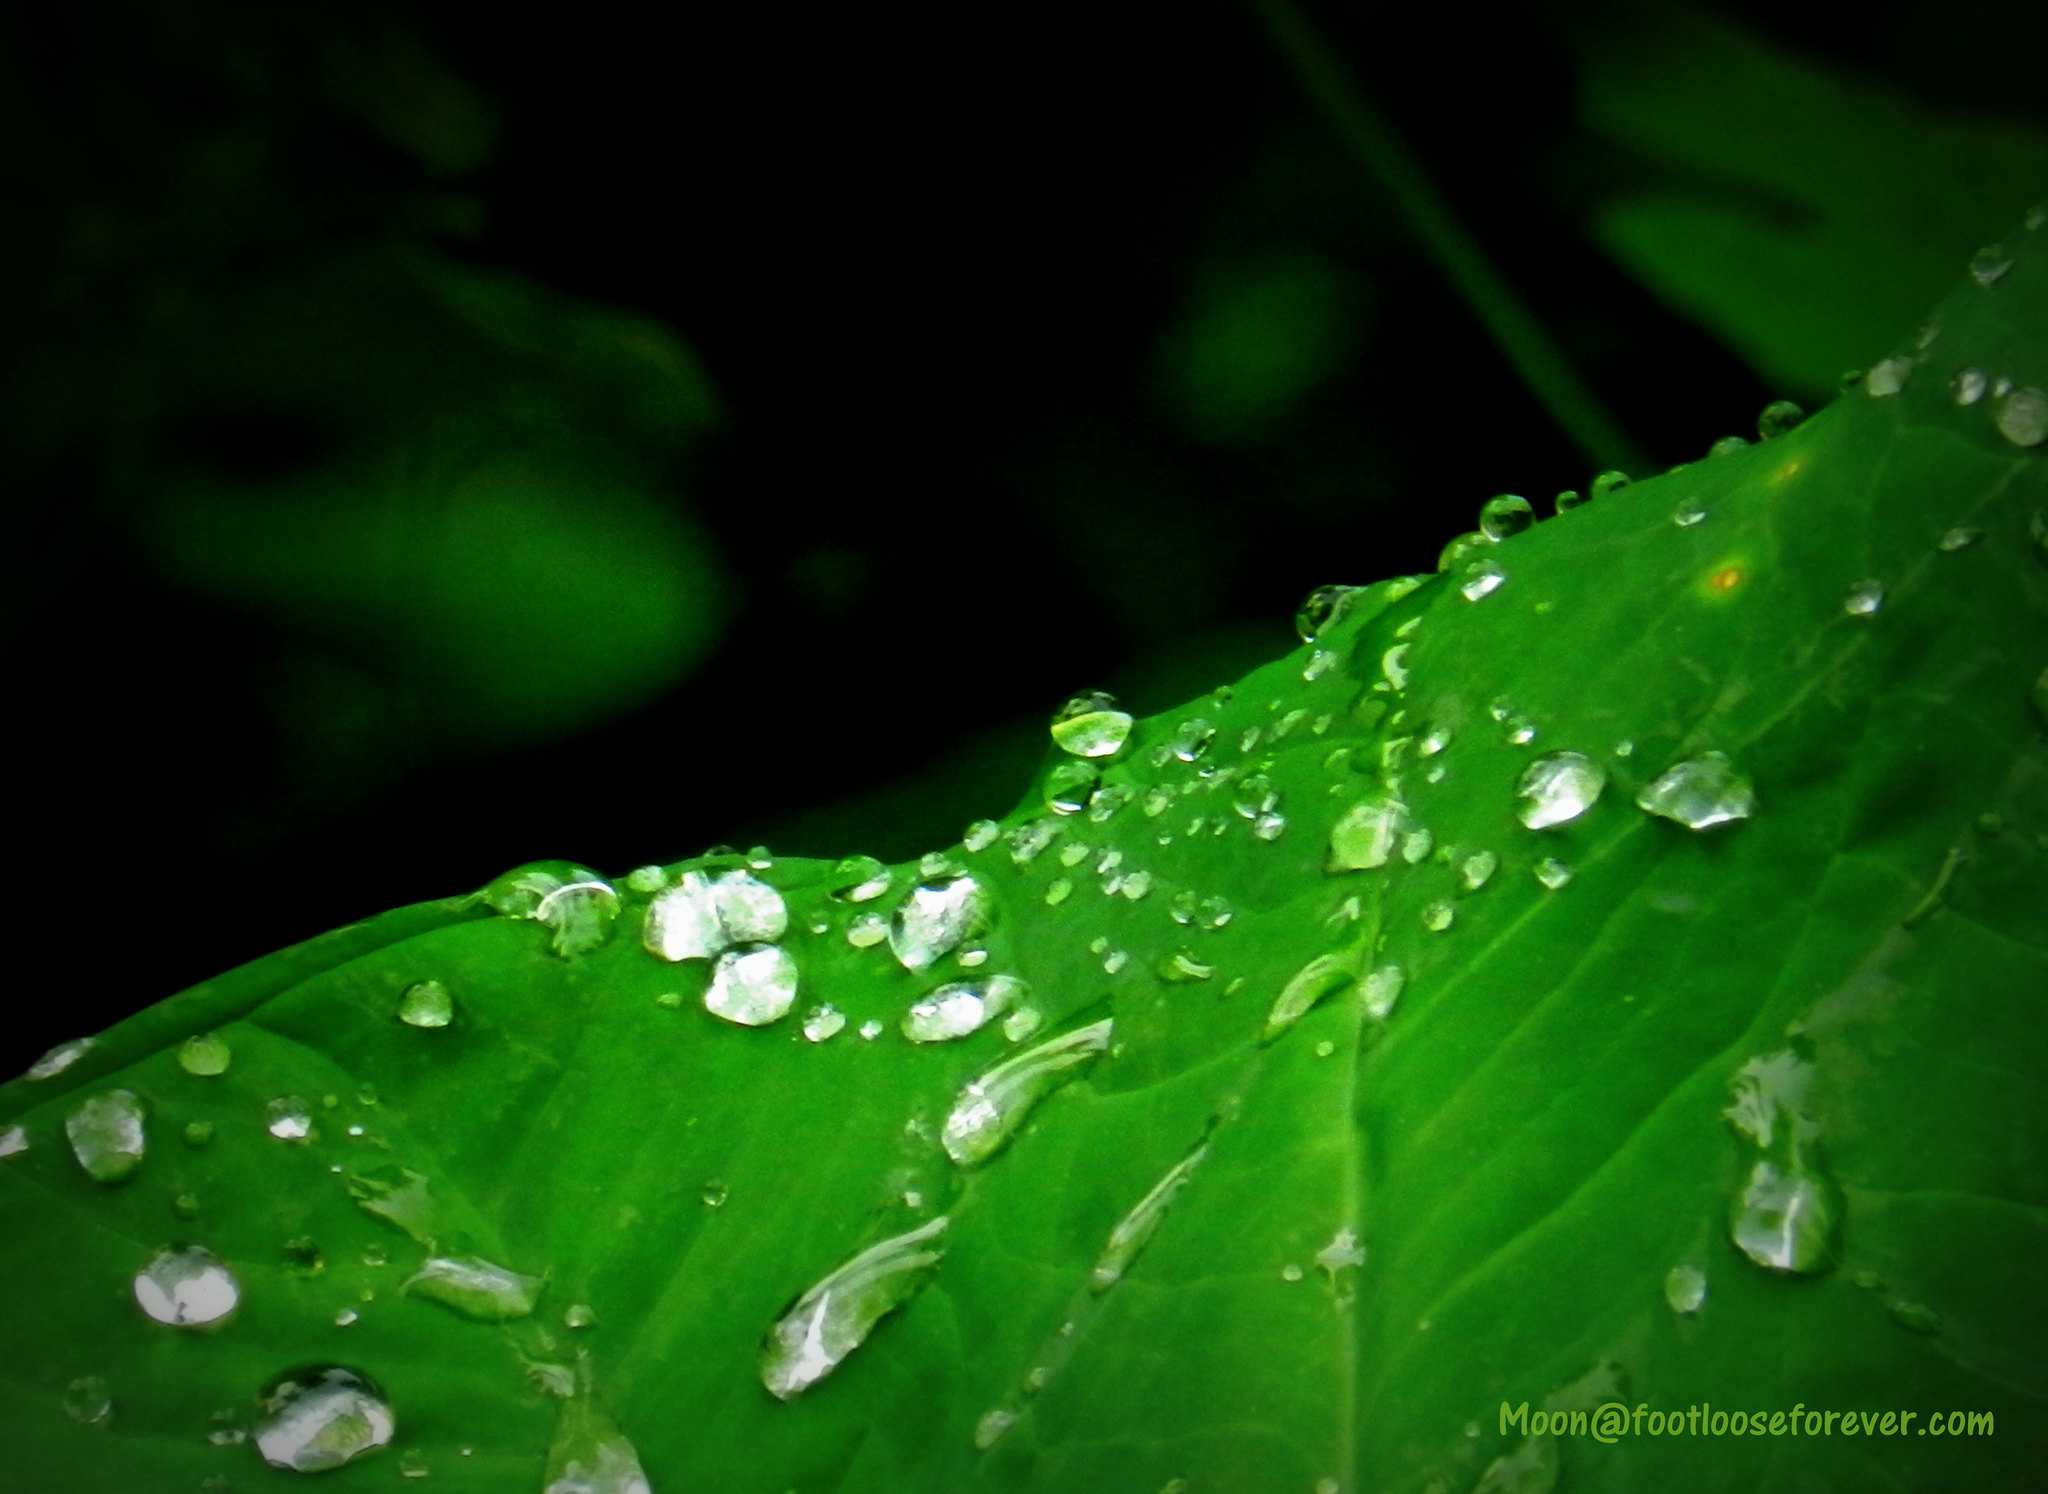 rain drops, water green leaves, monsoon, colocasia leaves